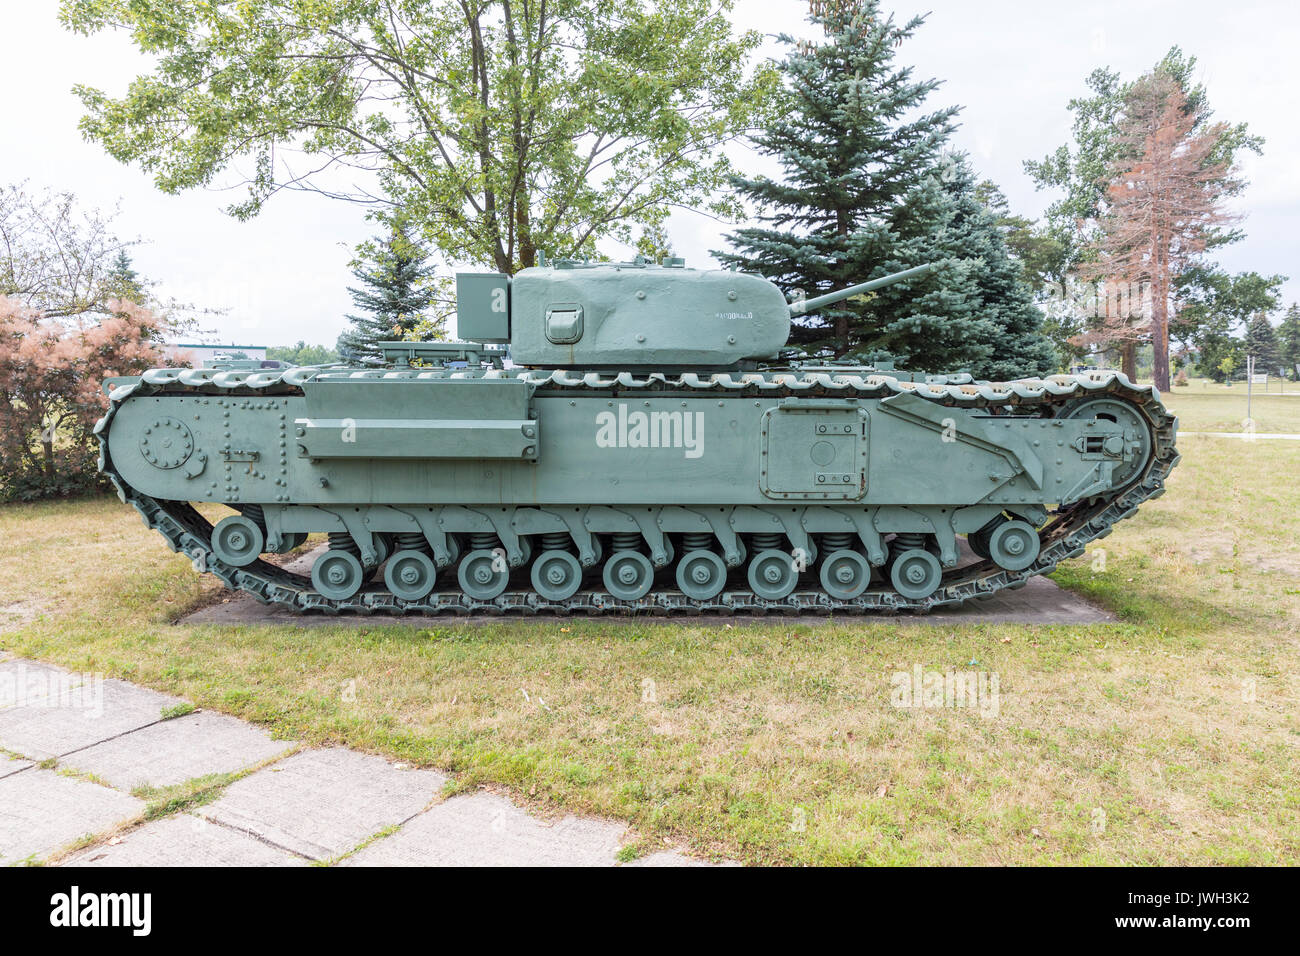 Military Armoured Vehicles - Stock Image